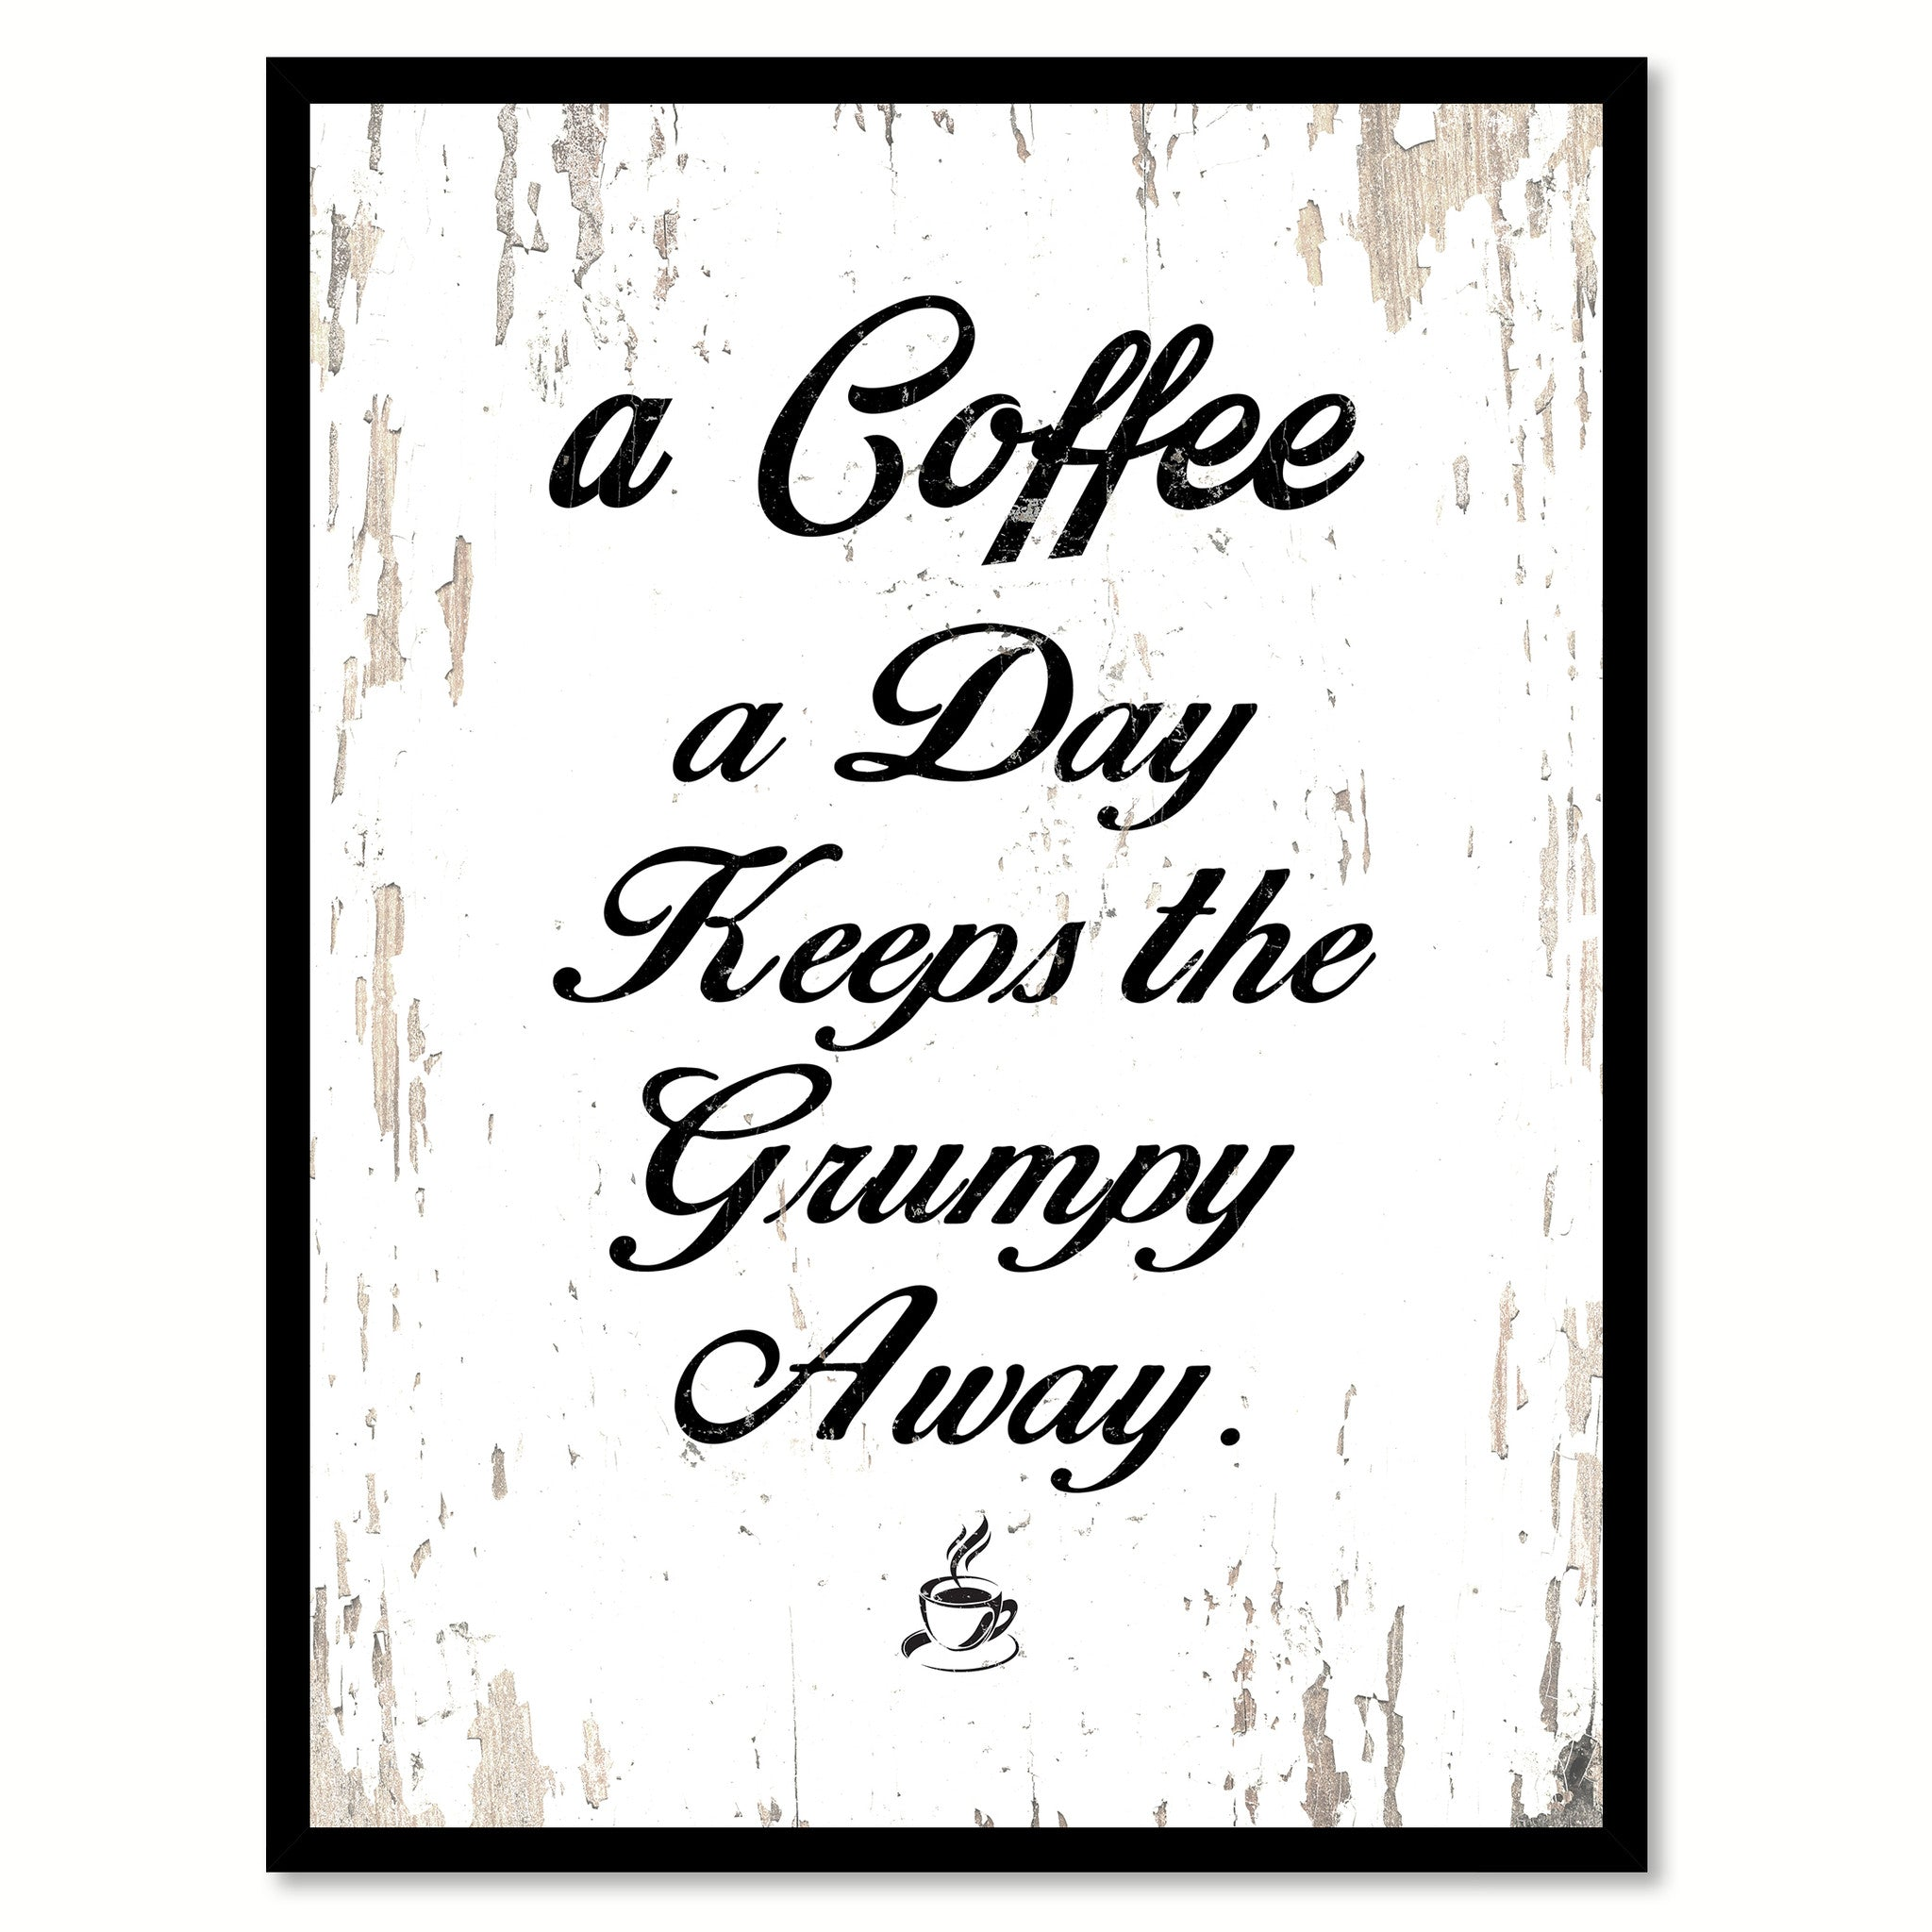 Saying Quotes A Coffee A Day Keeps The Grumpy Away Coffee Wine Saying Quote